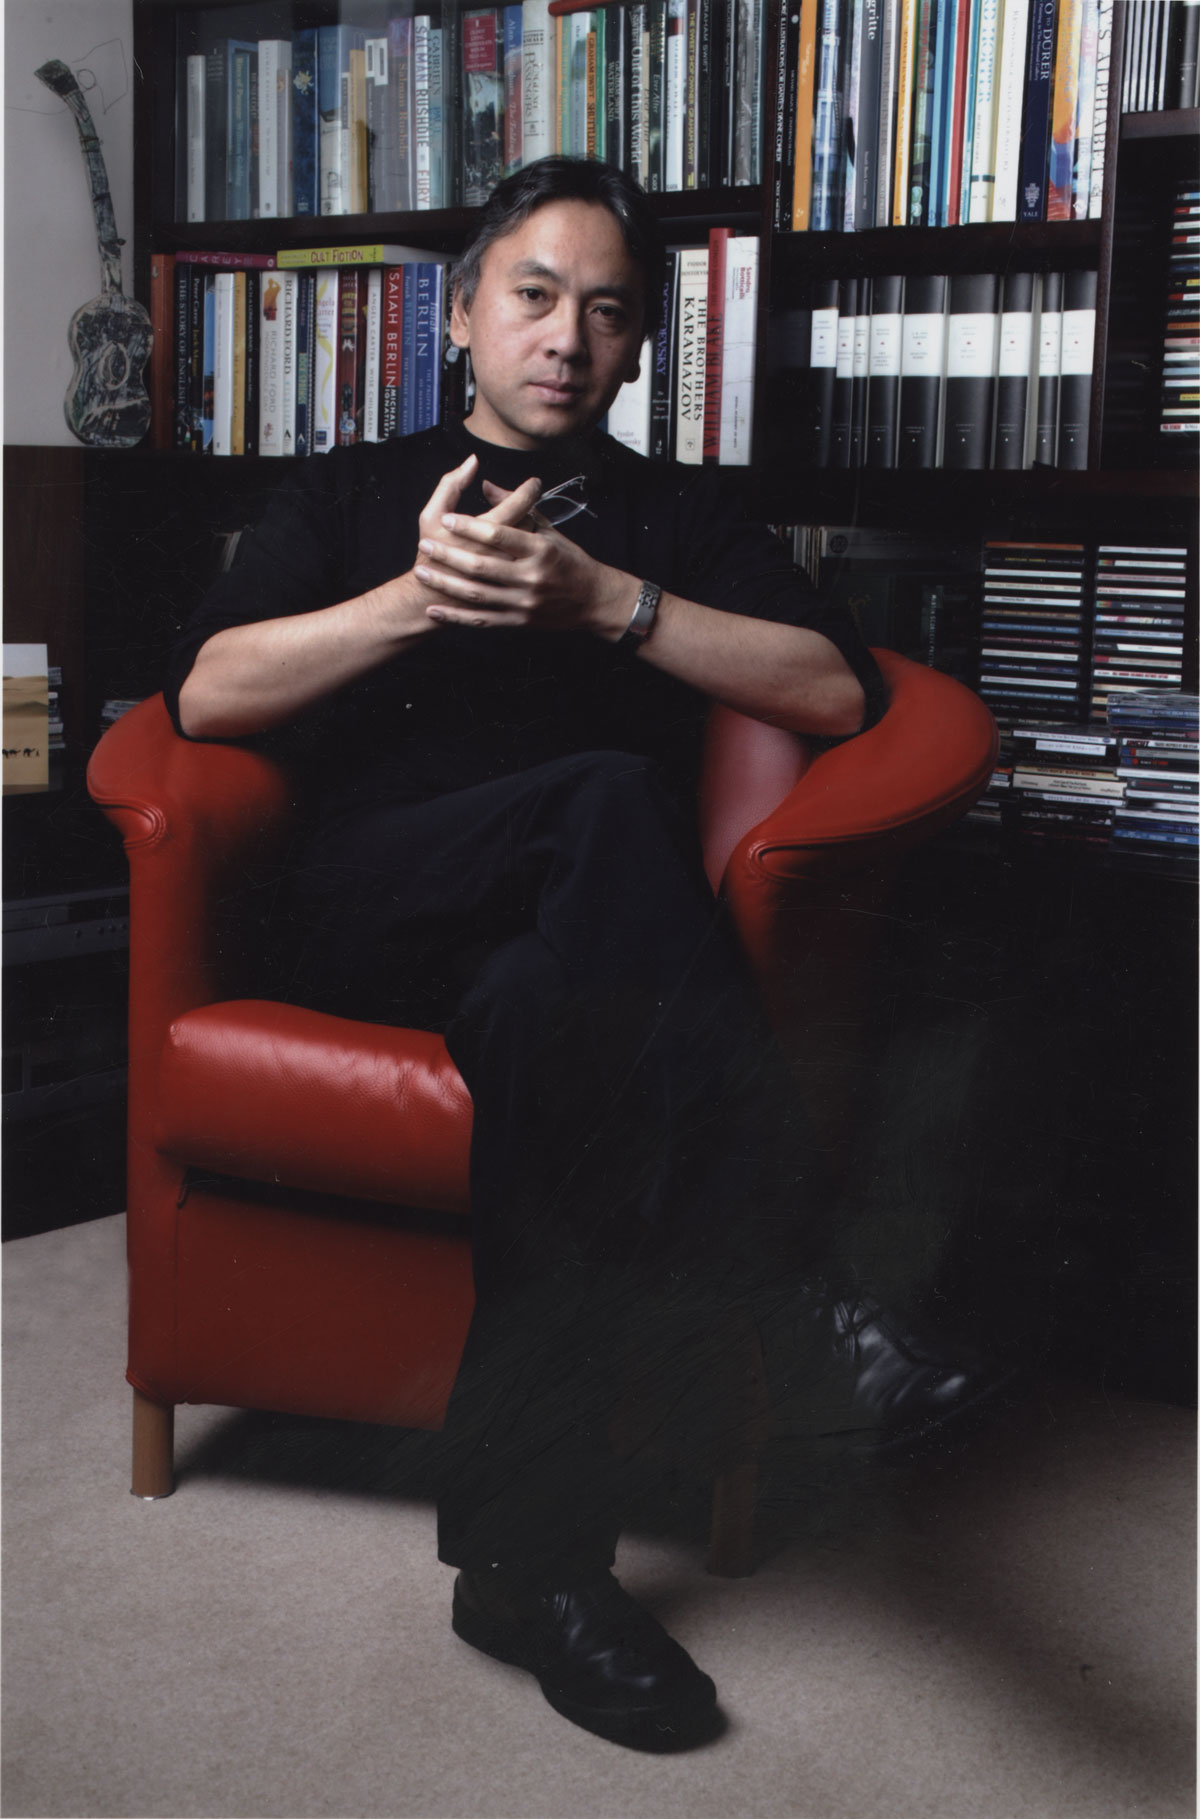 A rare photo of Kazuo Ishiguro not wearing his eyeglasses at his home in London, 2009. Photo by Isabelle Boccon-Gibod.